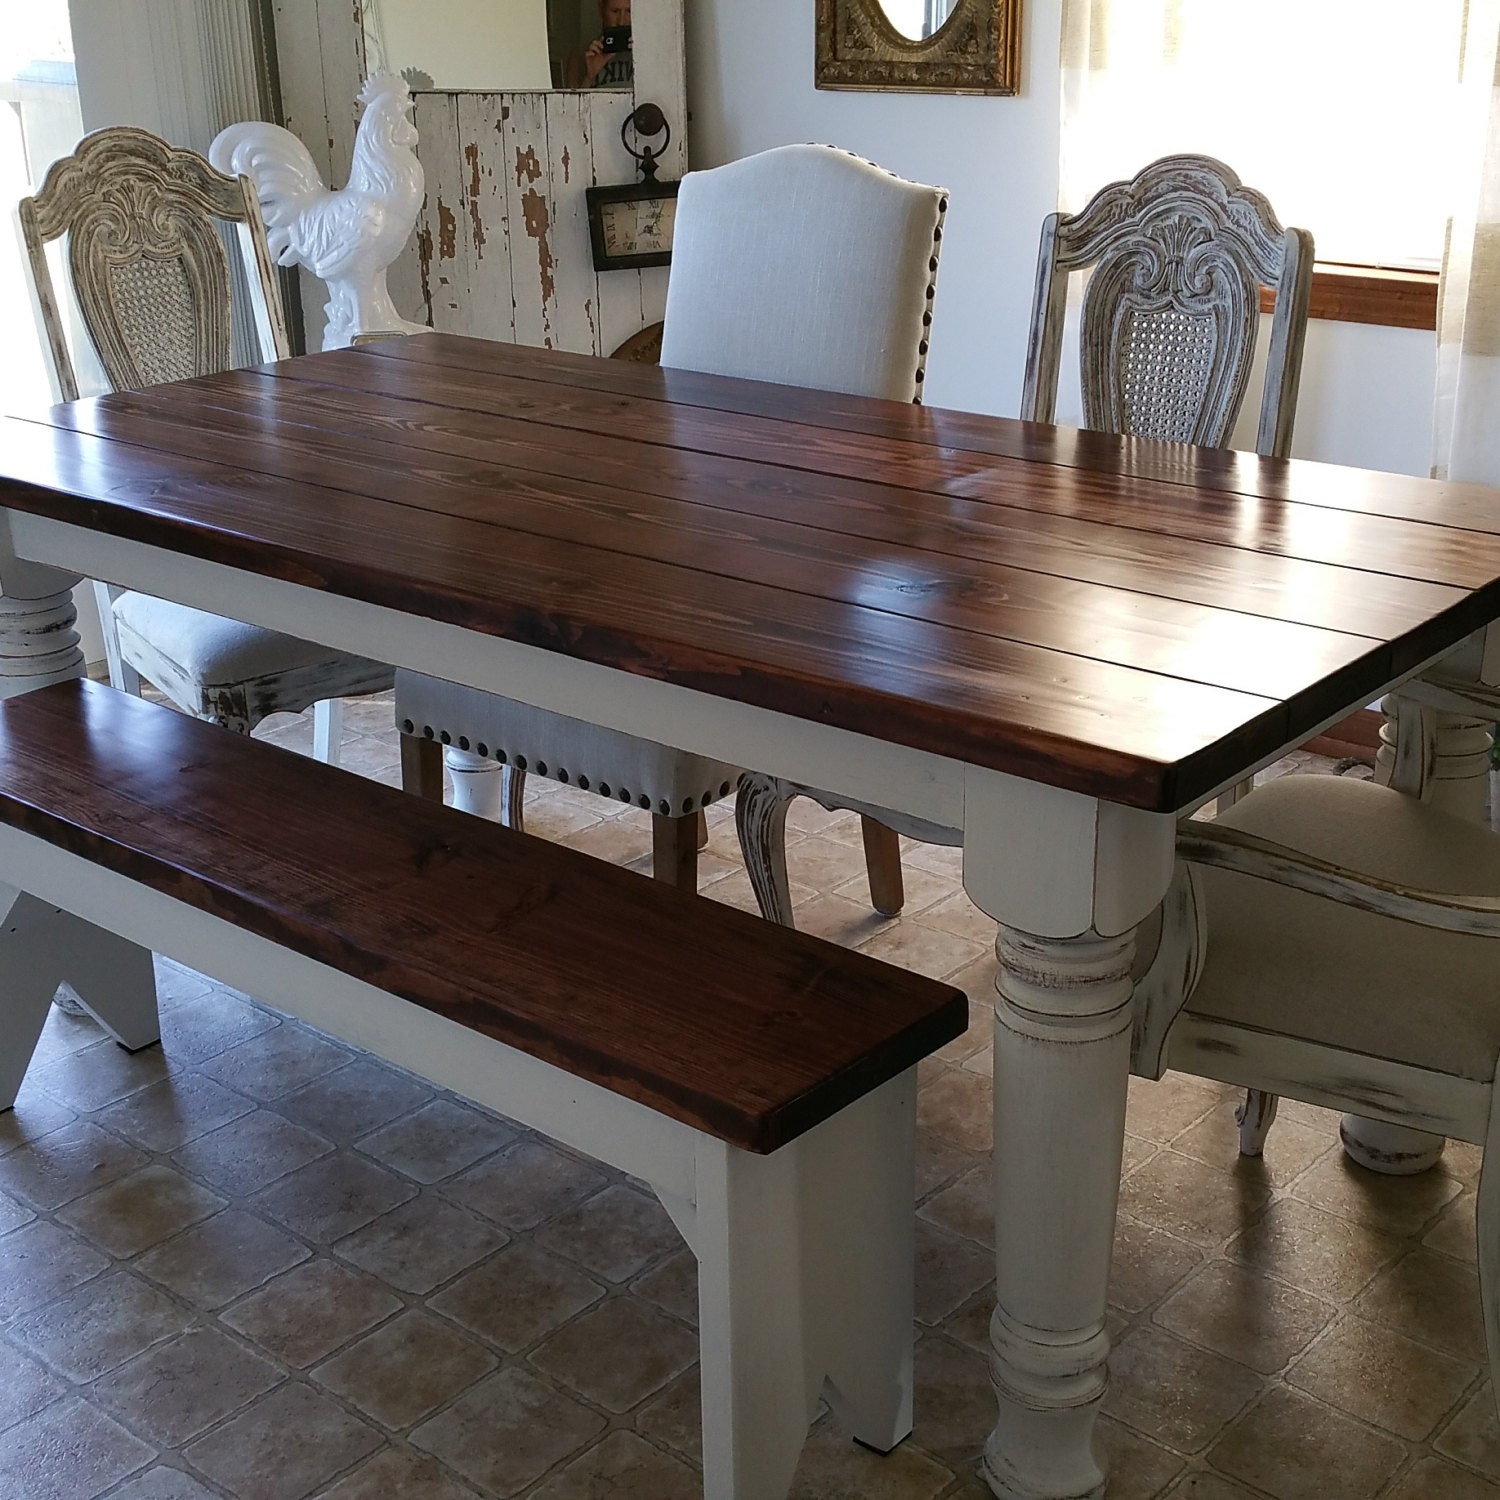 Dining Table With A Bench: Farmhouse Dining Table With Bench